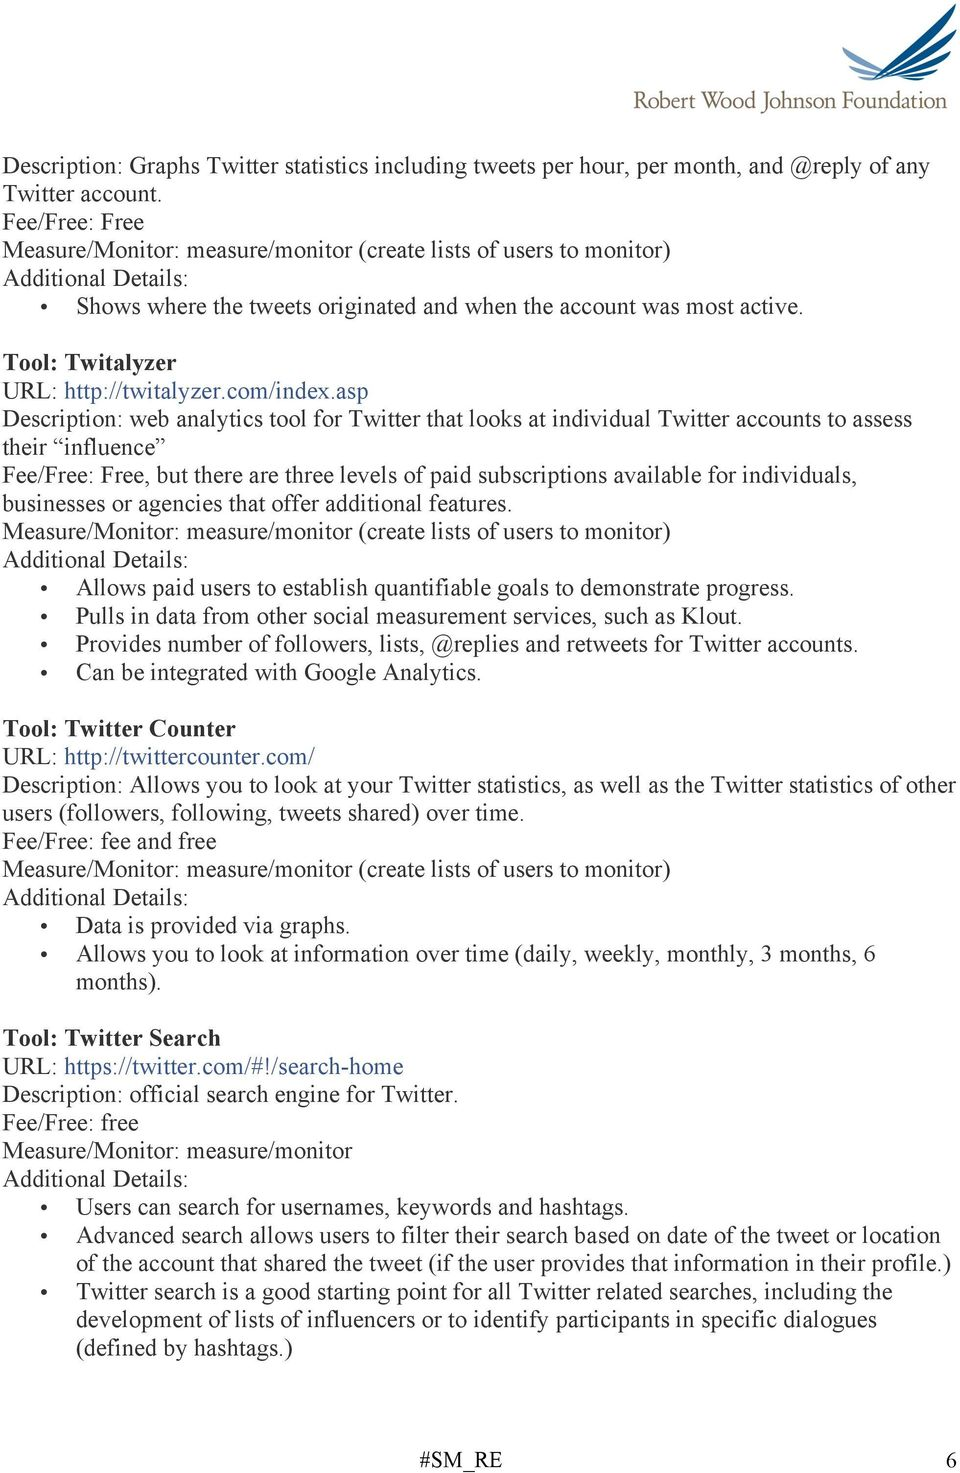 asp Description: web analytics tool for Twitter that looks at individual Twitter accounts to assess their influence, but there are three levels of paid subscriptions available for individuals,